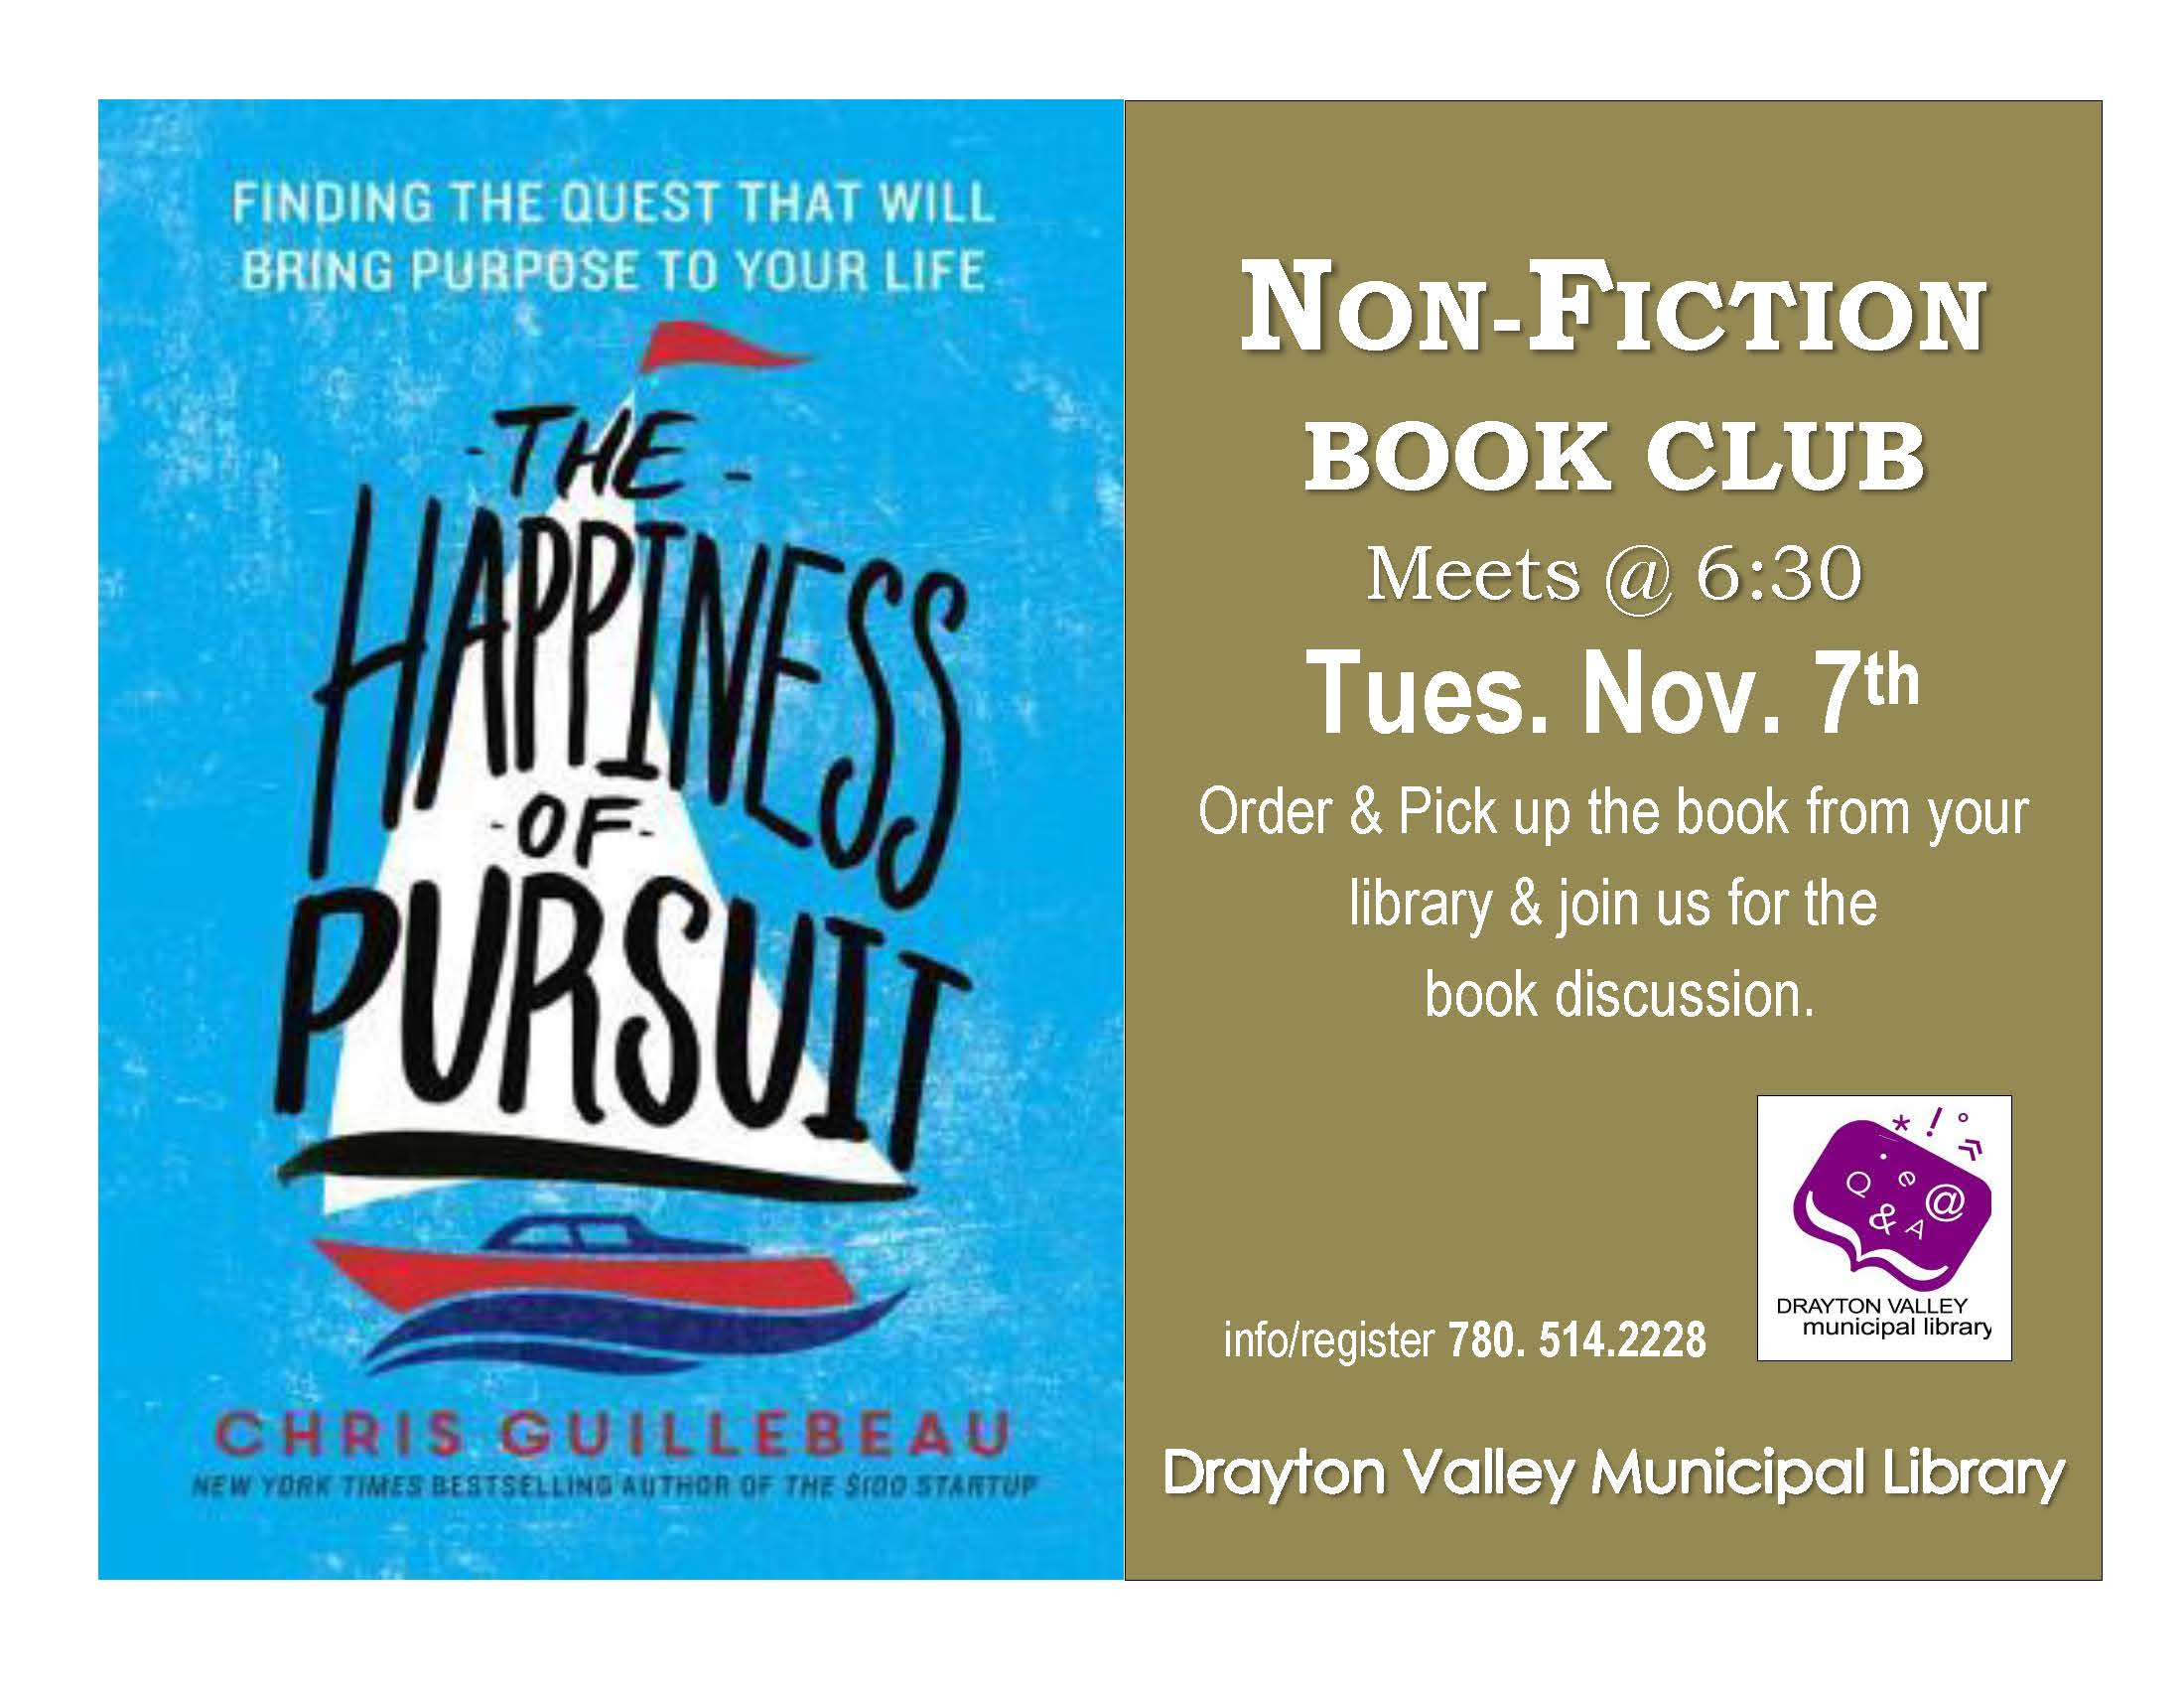 Non Fiction Book Club – November 14 Happiness of Pursuit